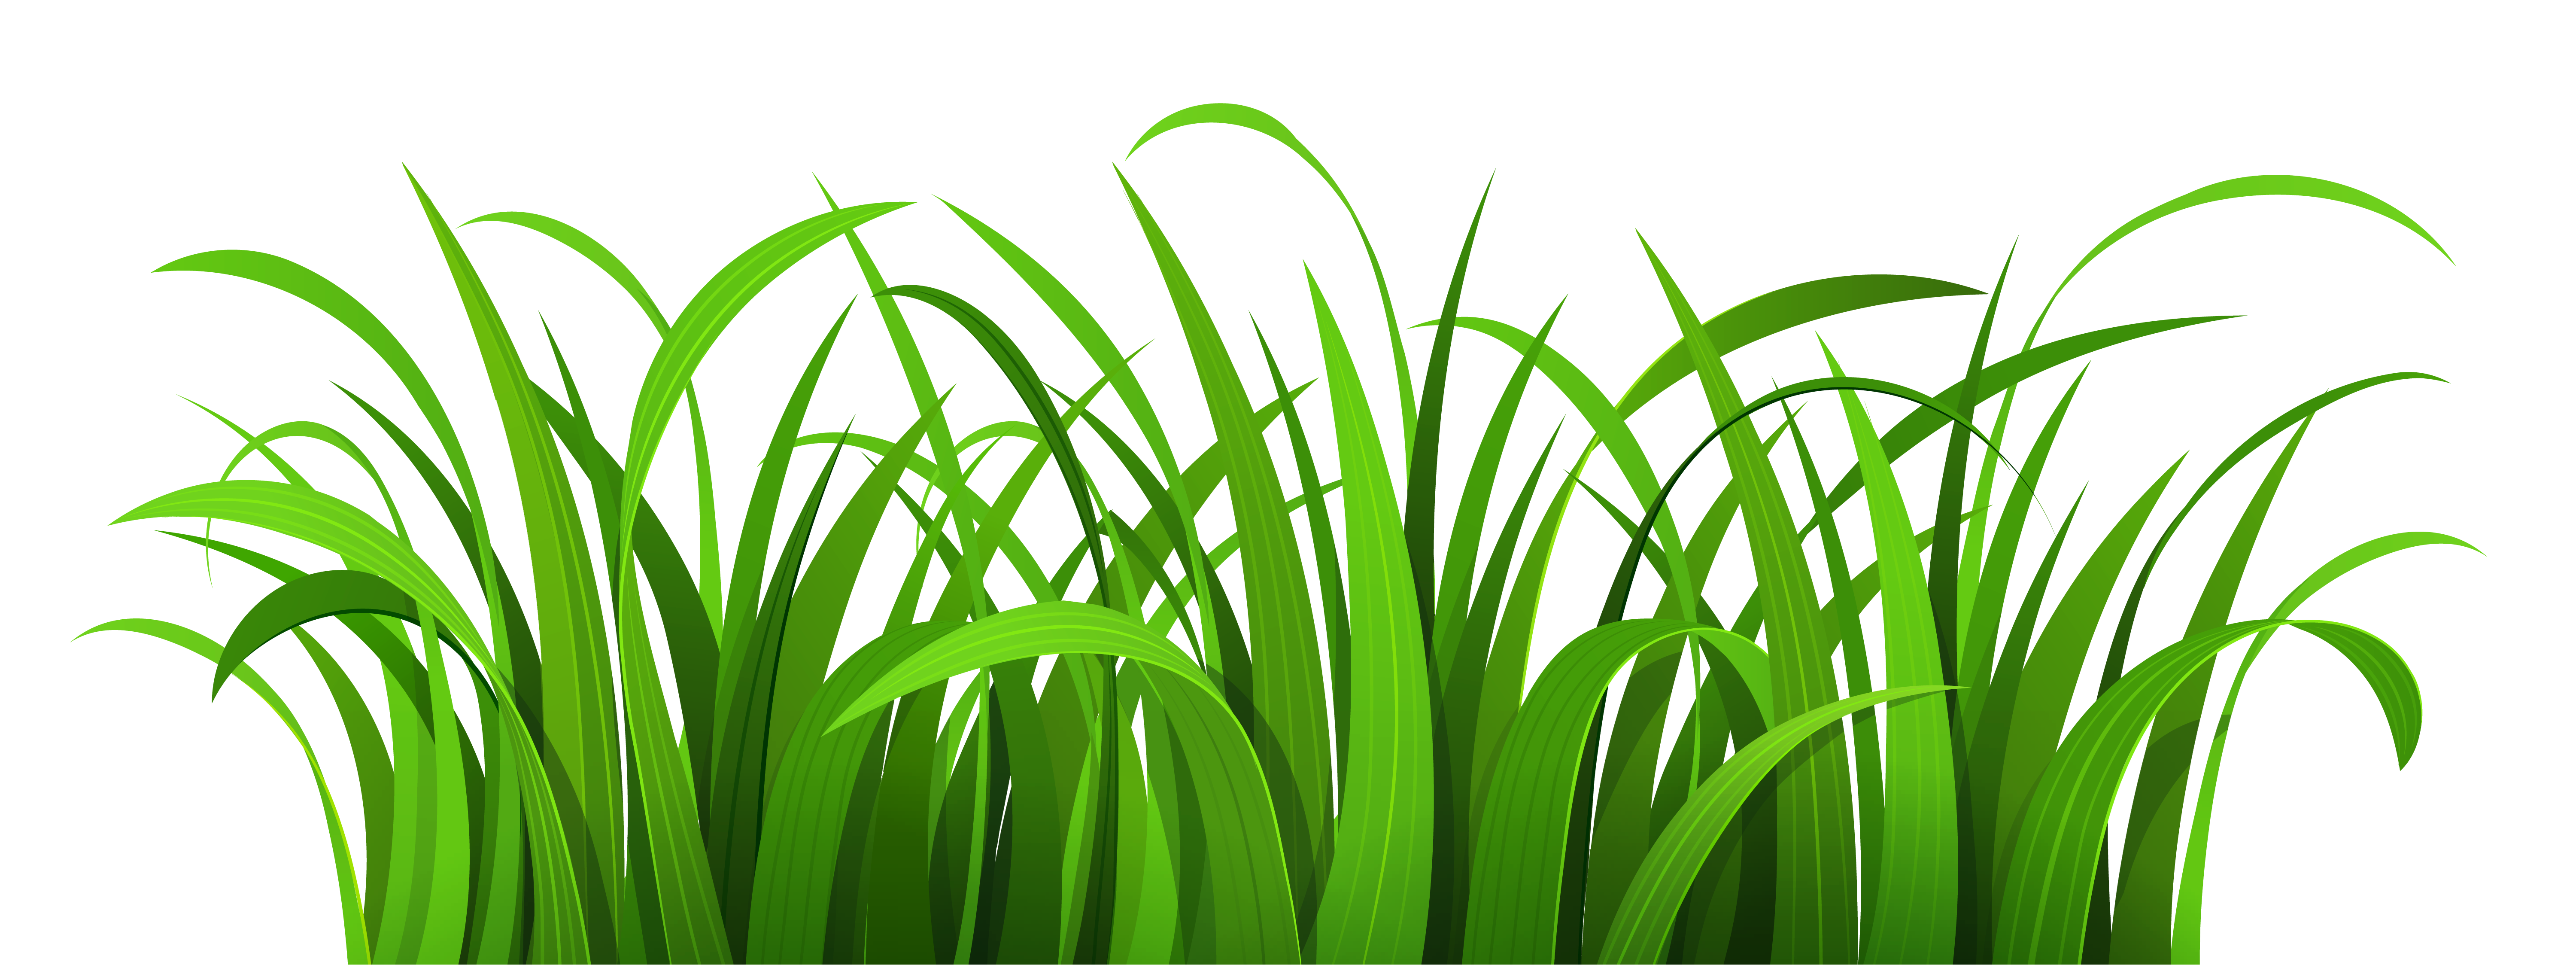 Grass clipart #2, Download drawings